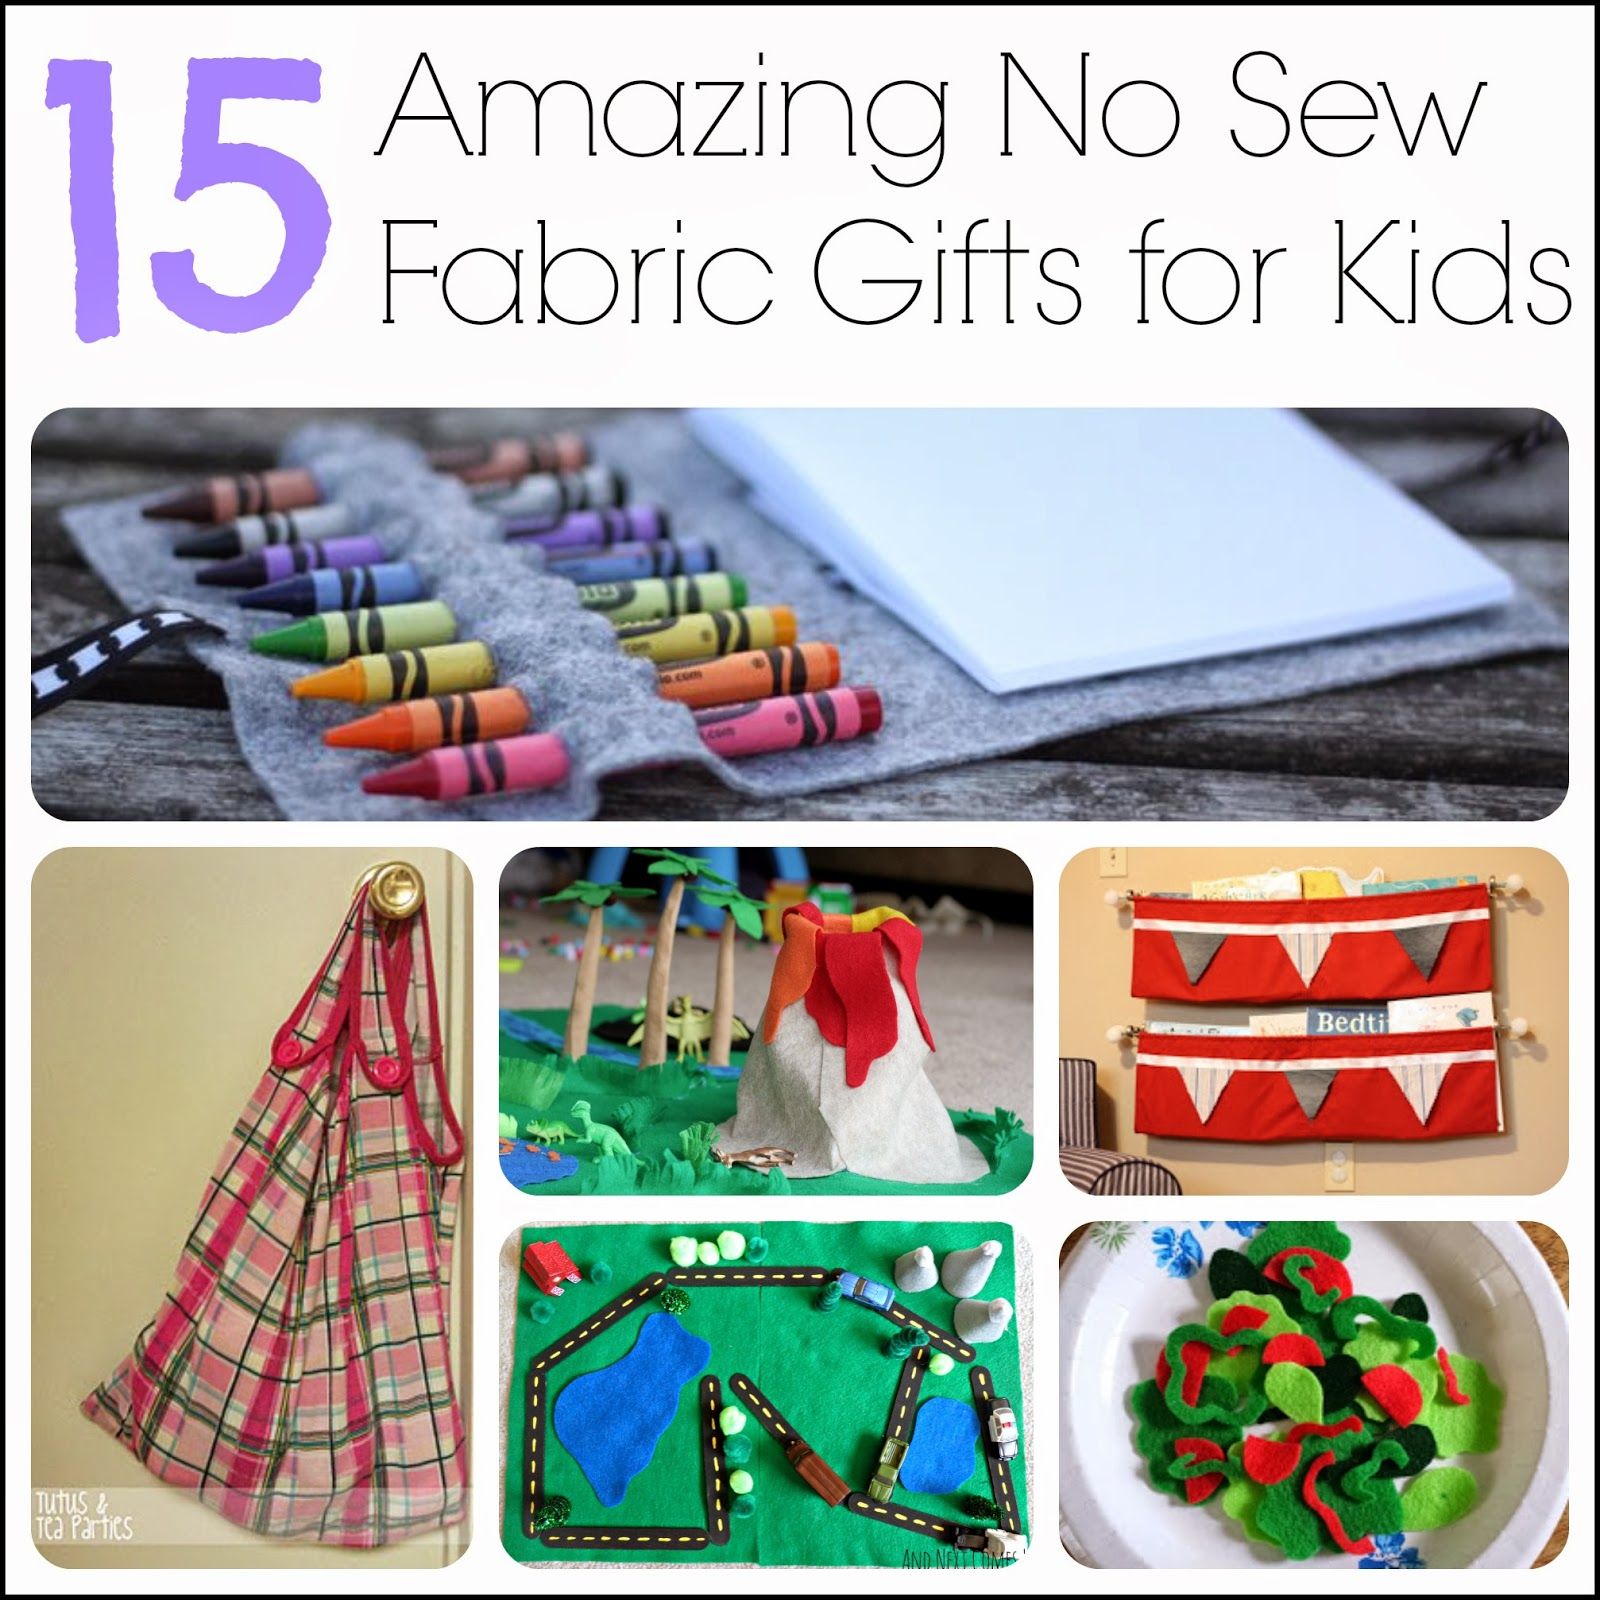 Fabric Craft Ideas For Kids Part - 16: 15 Amazing No Sew Fabric Gifts For Kids, Including Play Food, Bags, Play